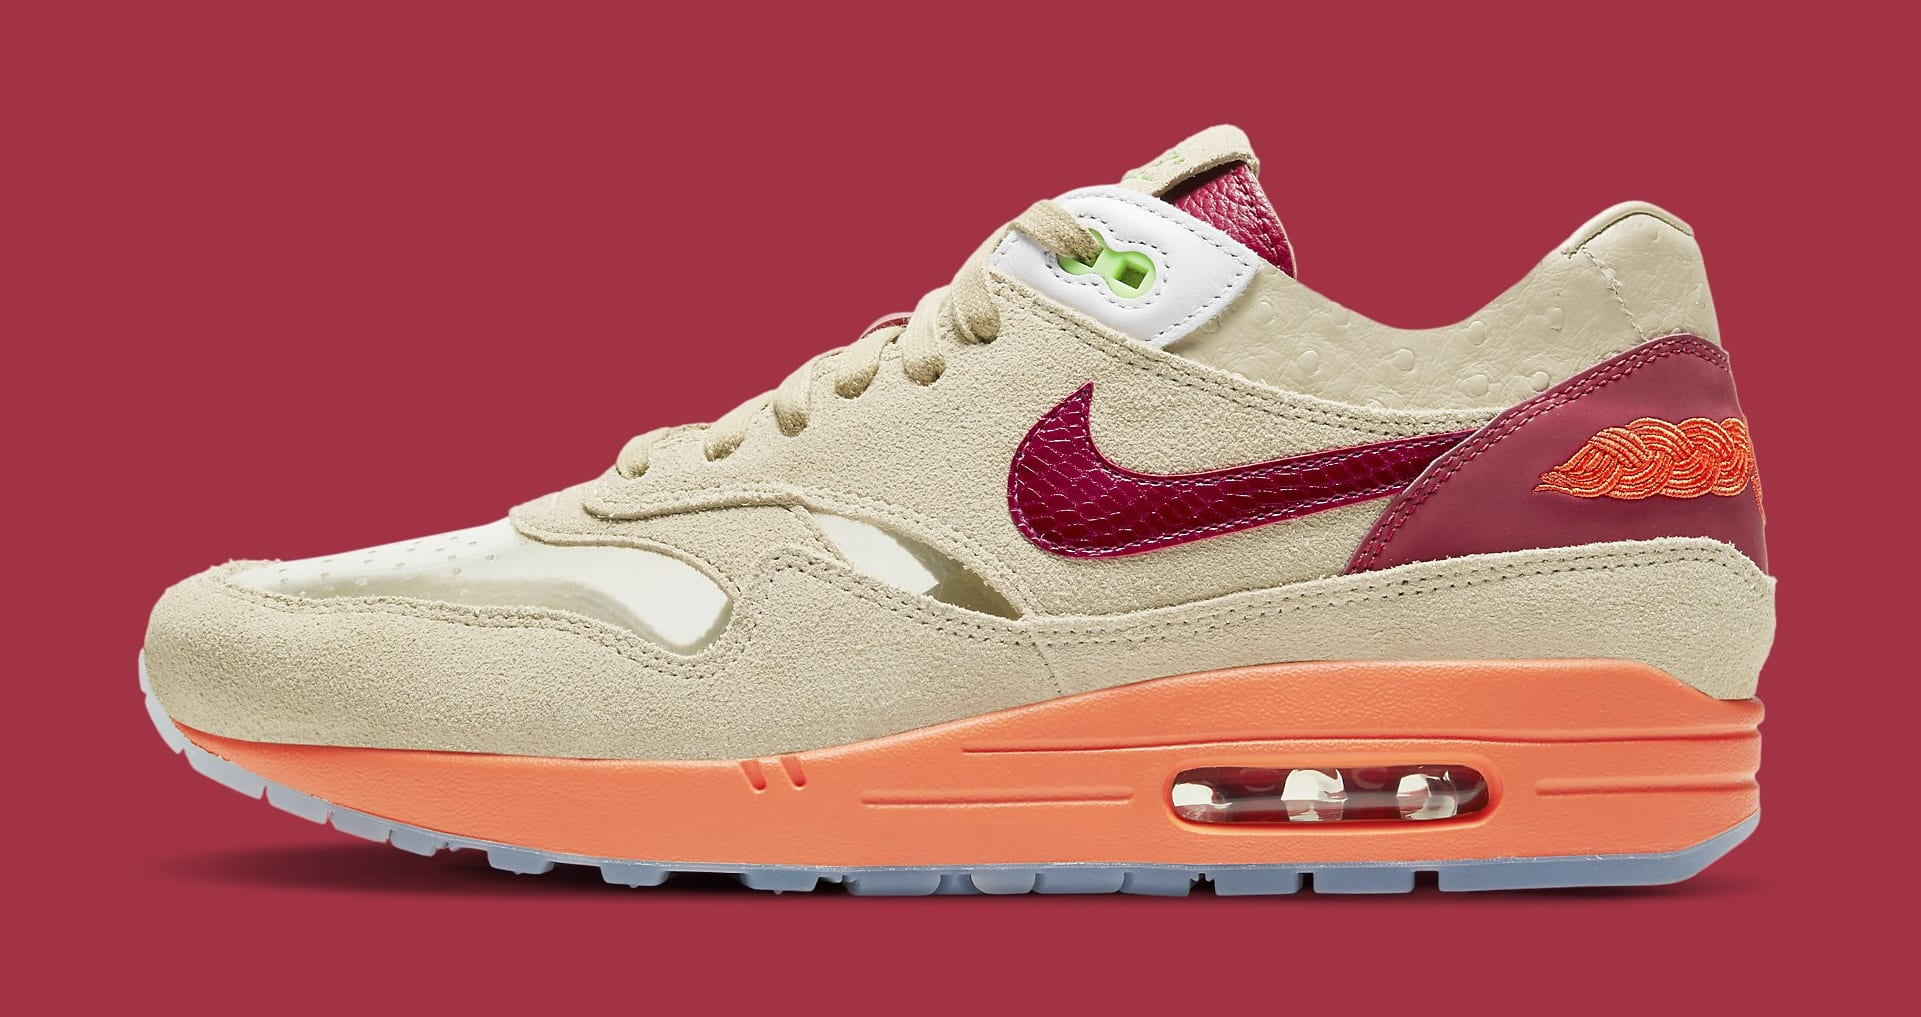 Clot x Nike Air Max 1 'Kiss of Death' 2021 DD1870-100 Lateral